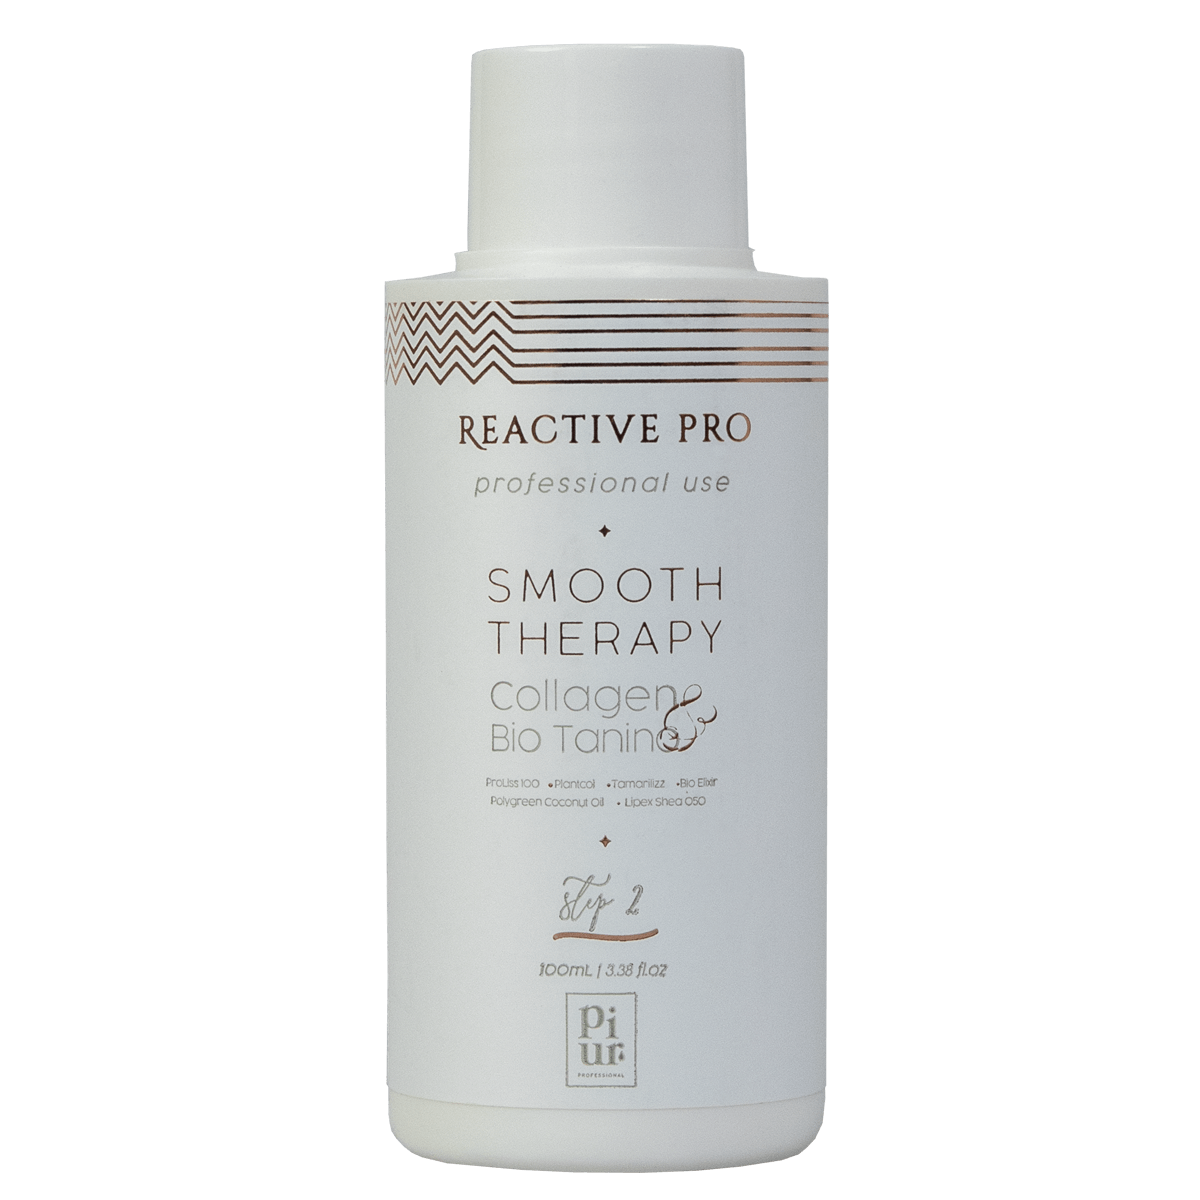 PIUR - Reactive Pro Smooth Therapy 100 mL